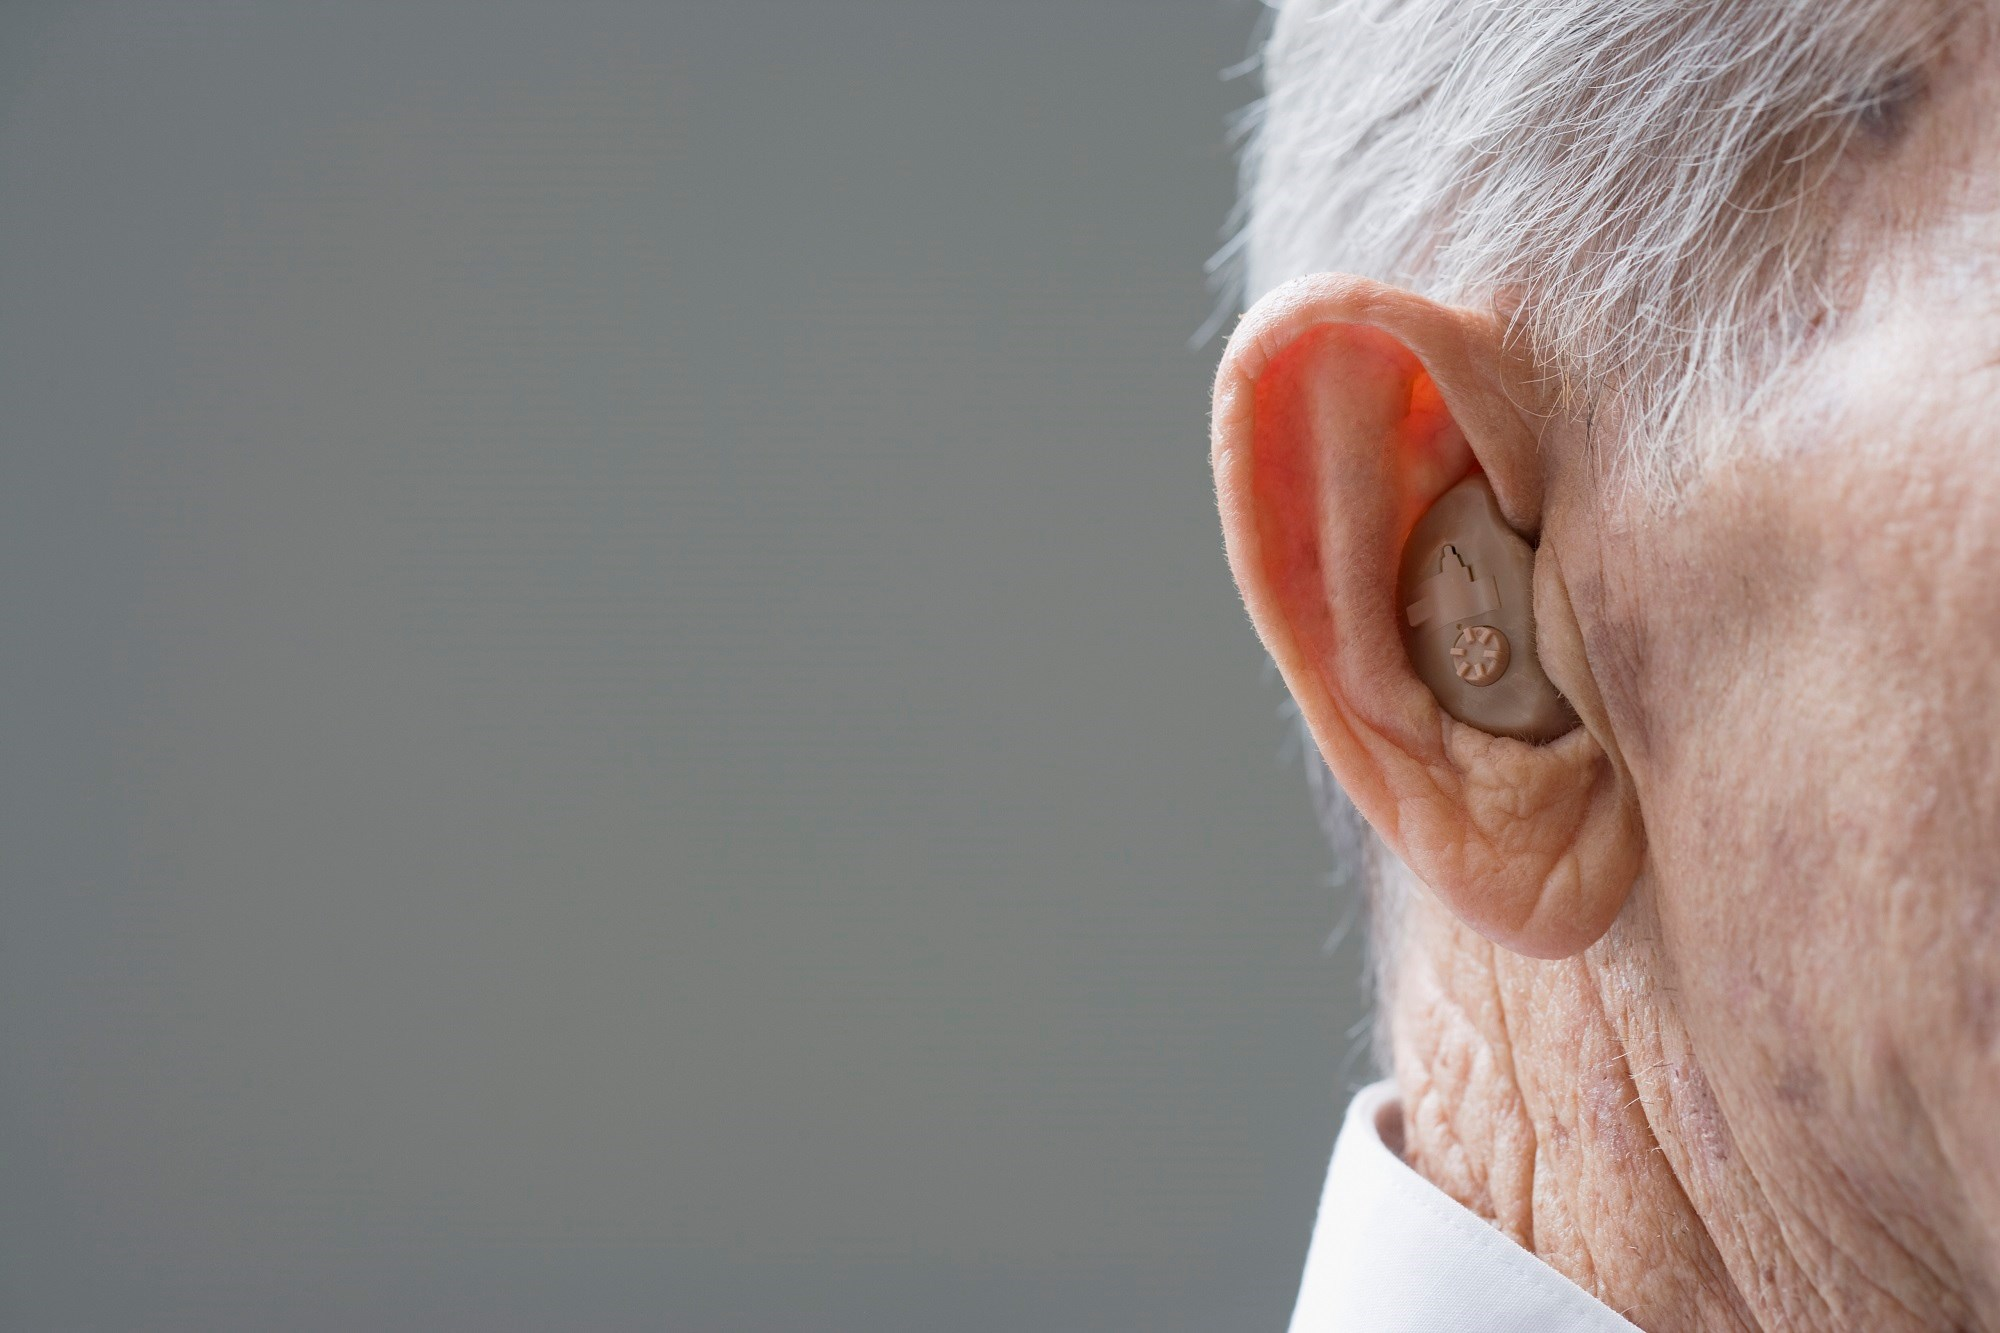 The odds of having clinically significant depressive symptoms increased approximately 45% for every 20-dB increase in hearing loss.